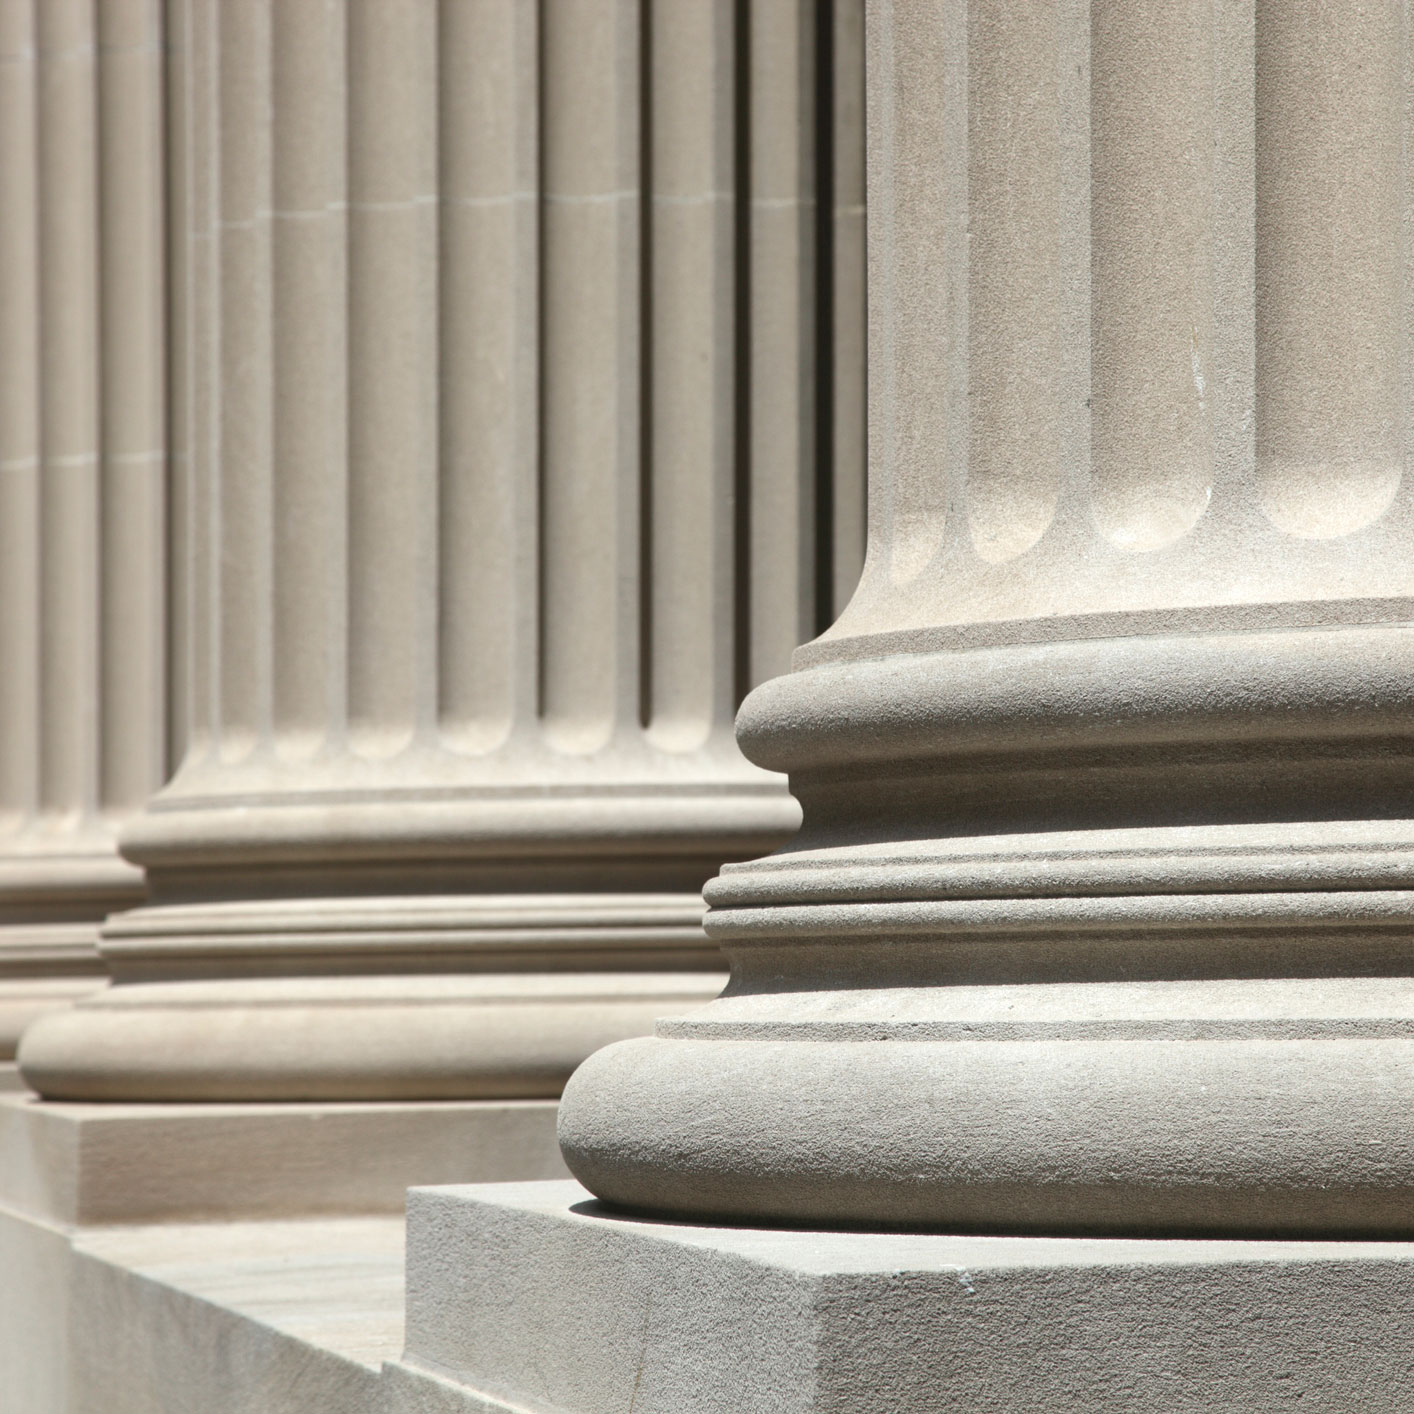 Close up photo of neoclassical columns in a row